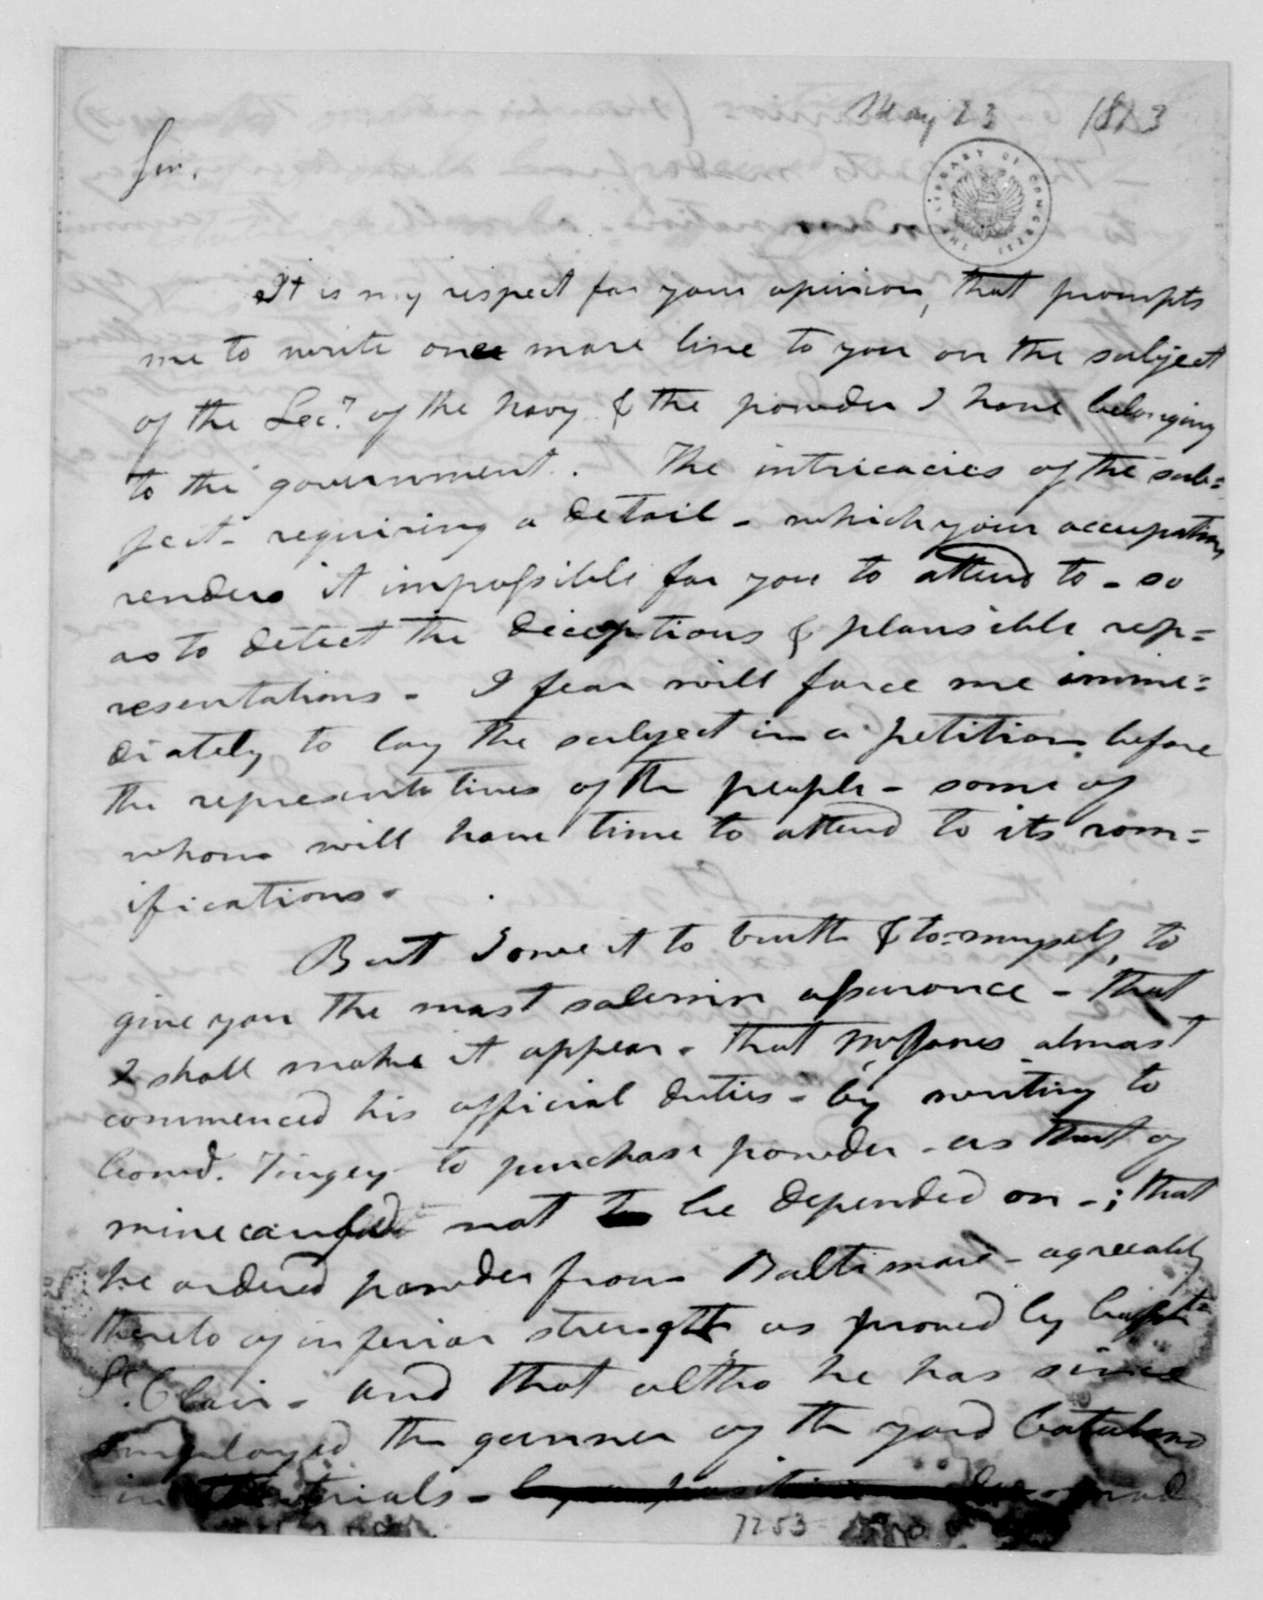 Thomas Ewell to James Madison, May 23, 1813.